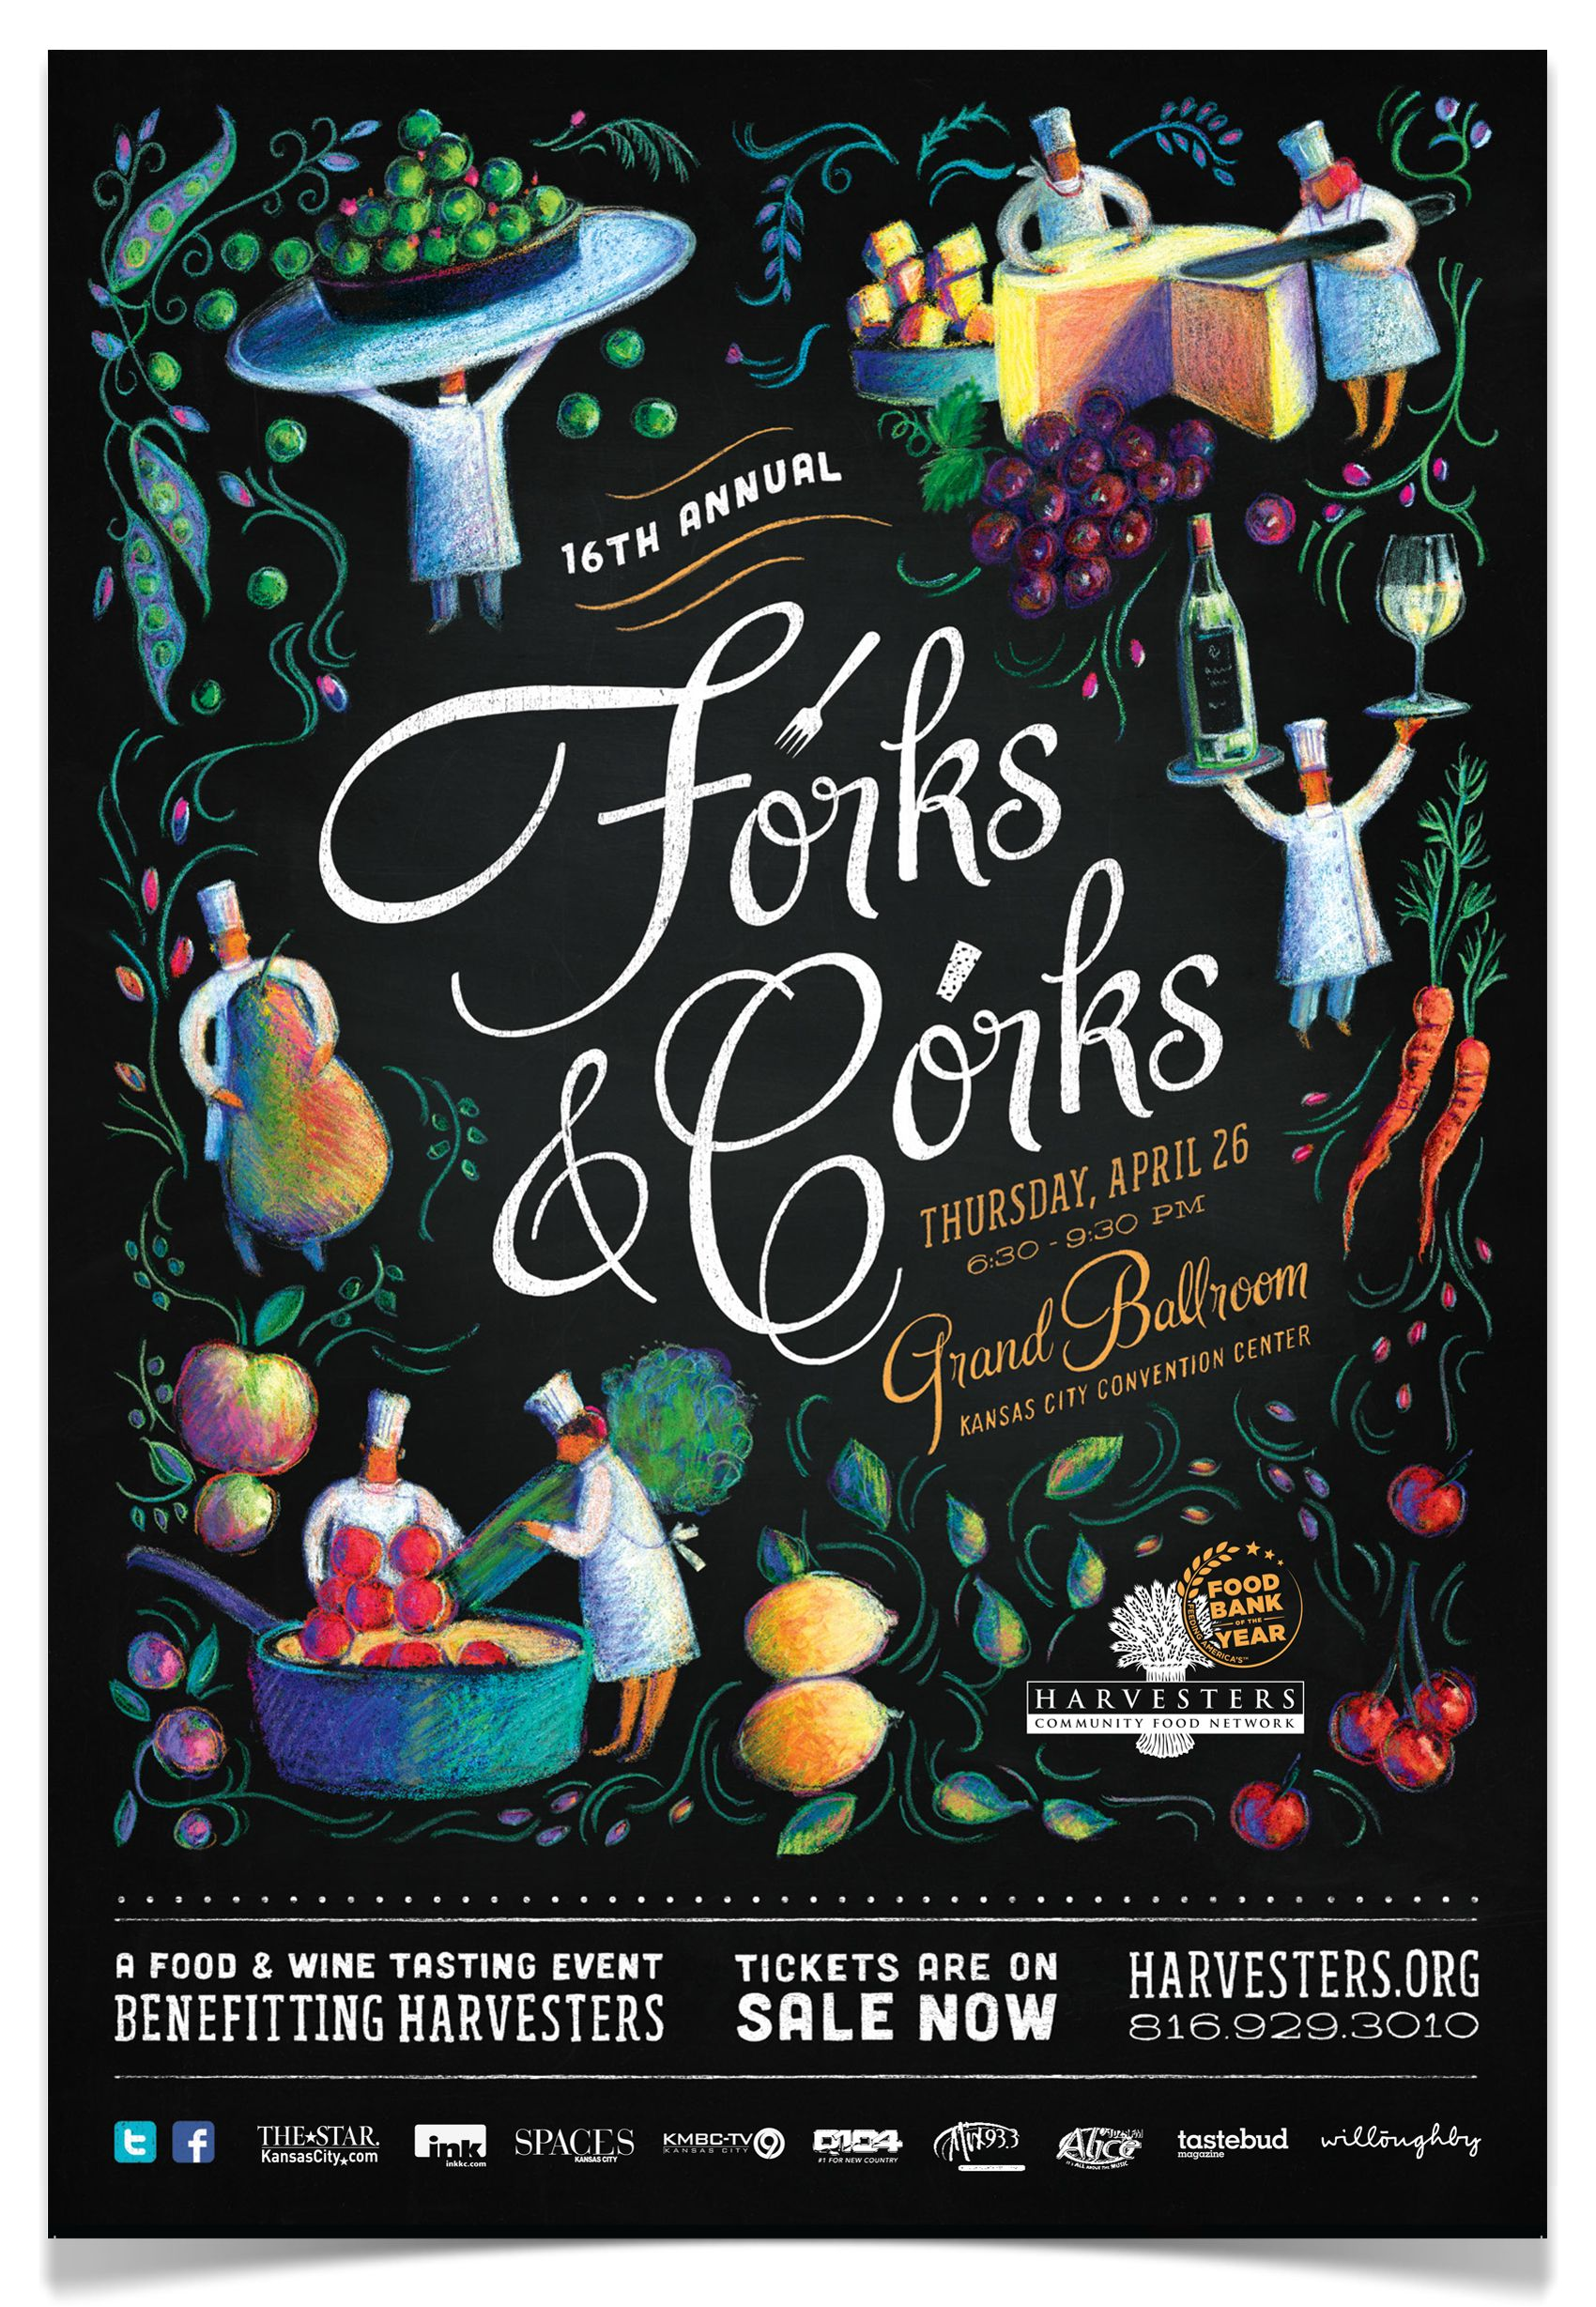 Forks & Corks Posters by Willoughby Design